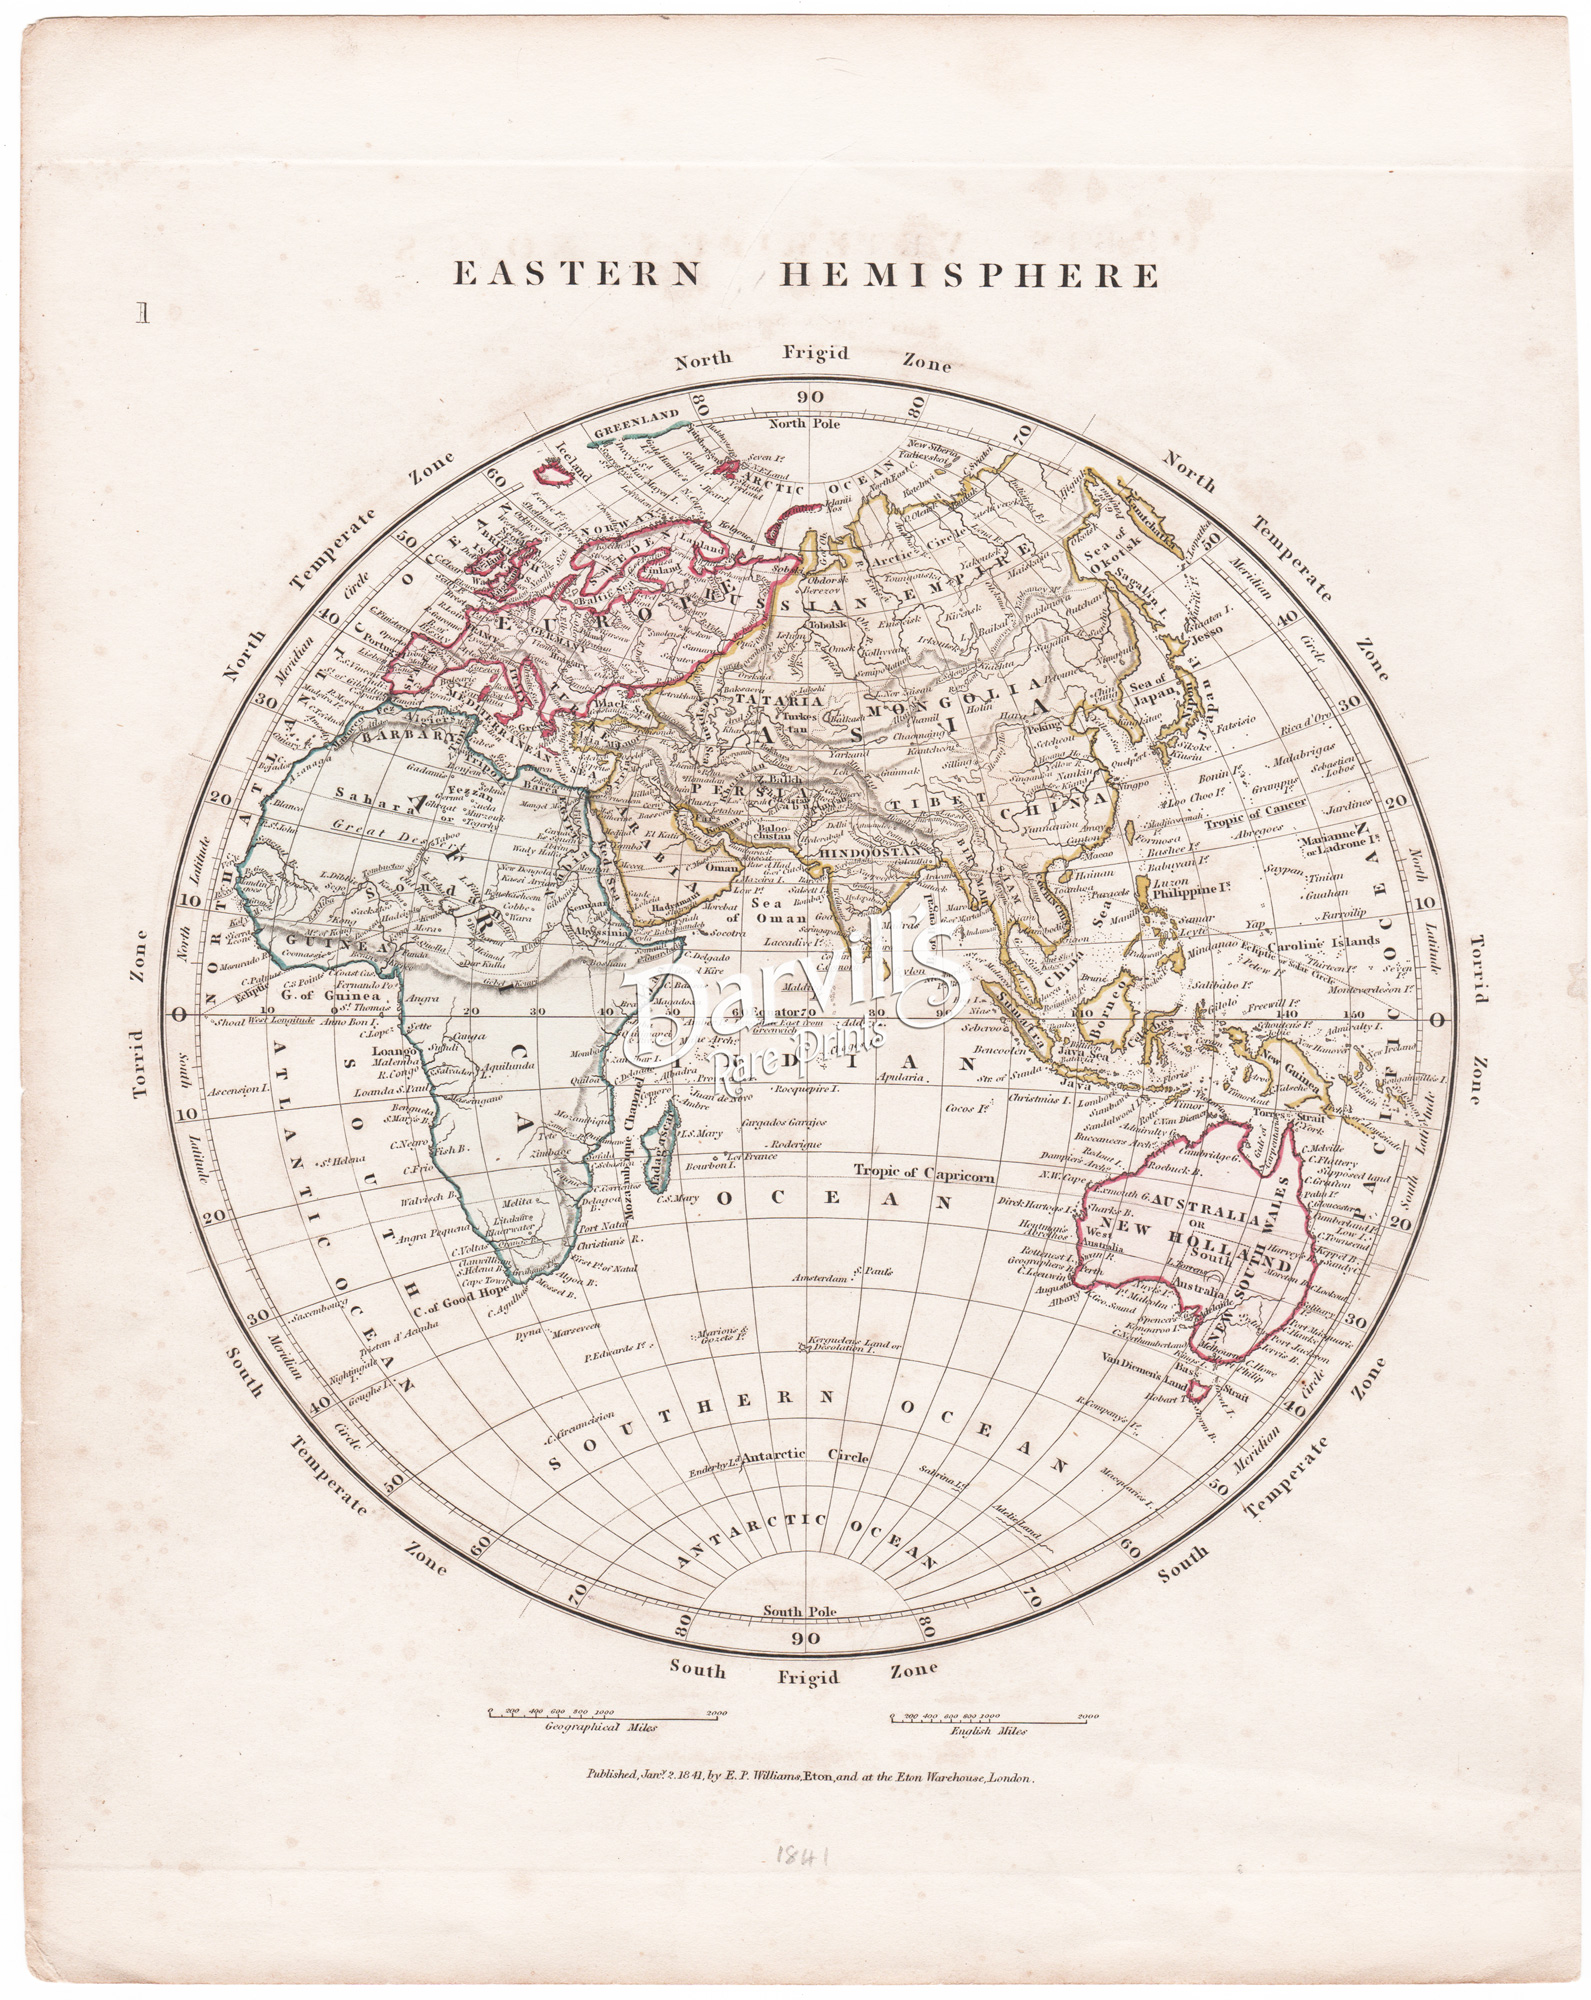 World Map Watermark.Antique Maps Of The World Continents Hemispheres And Comparison